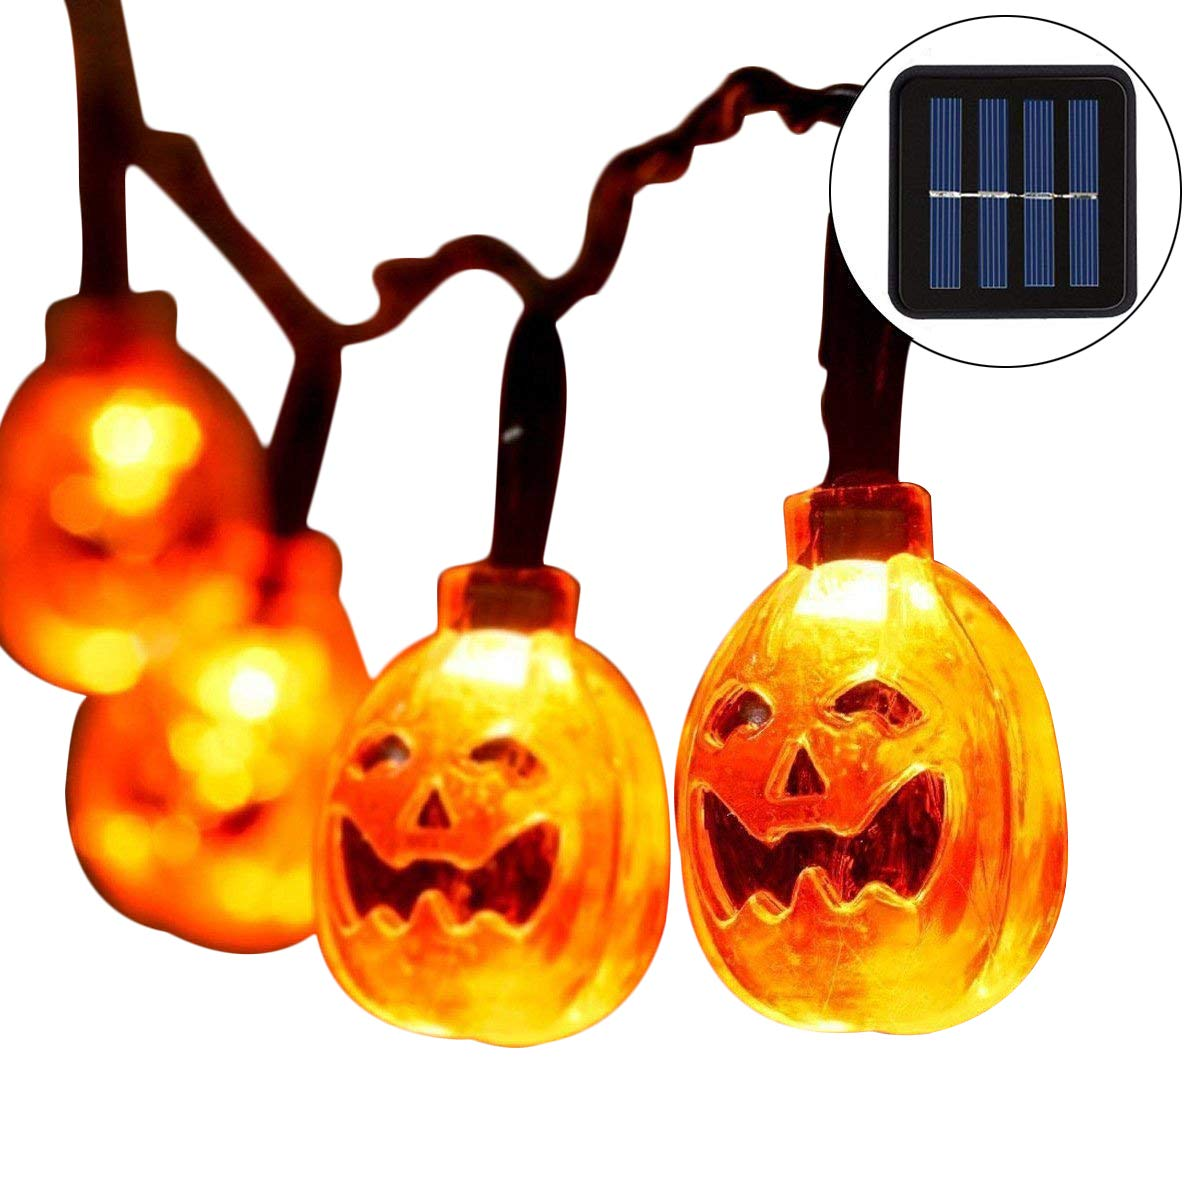 Pumpkin String Lights Outdoor Halloween Lights with 30 LEDs Pumpkin Solar Power String Lights for Outdoor,Home,Patio,Garden Deco (30 LEDs Warm White) by Lightter